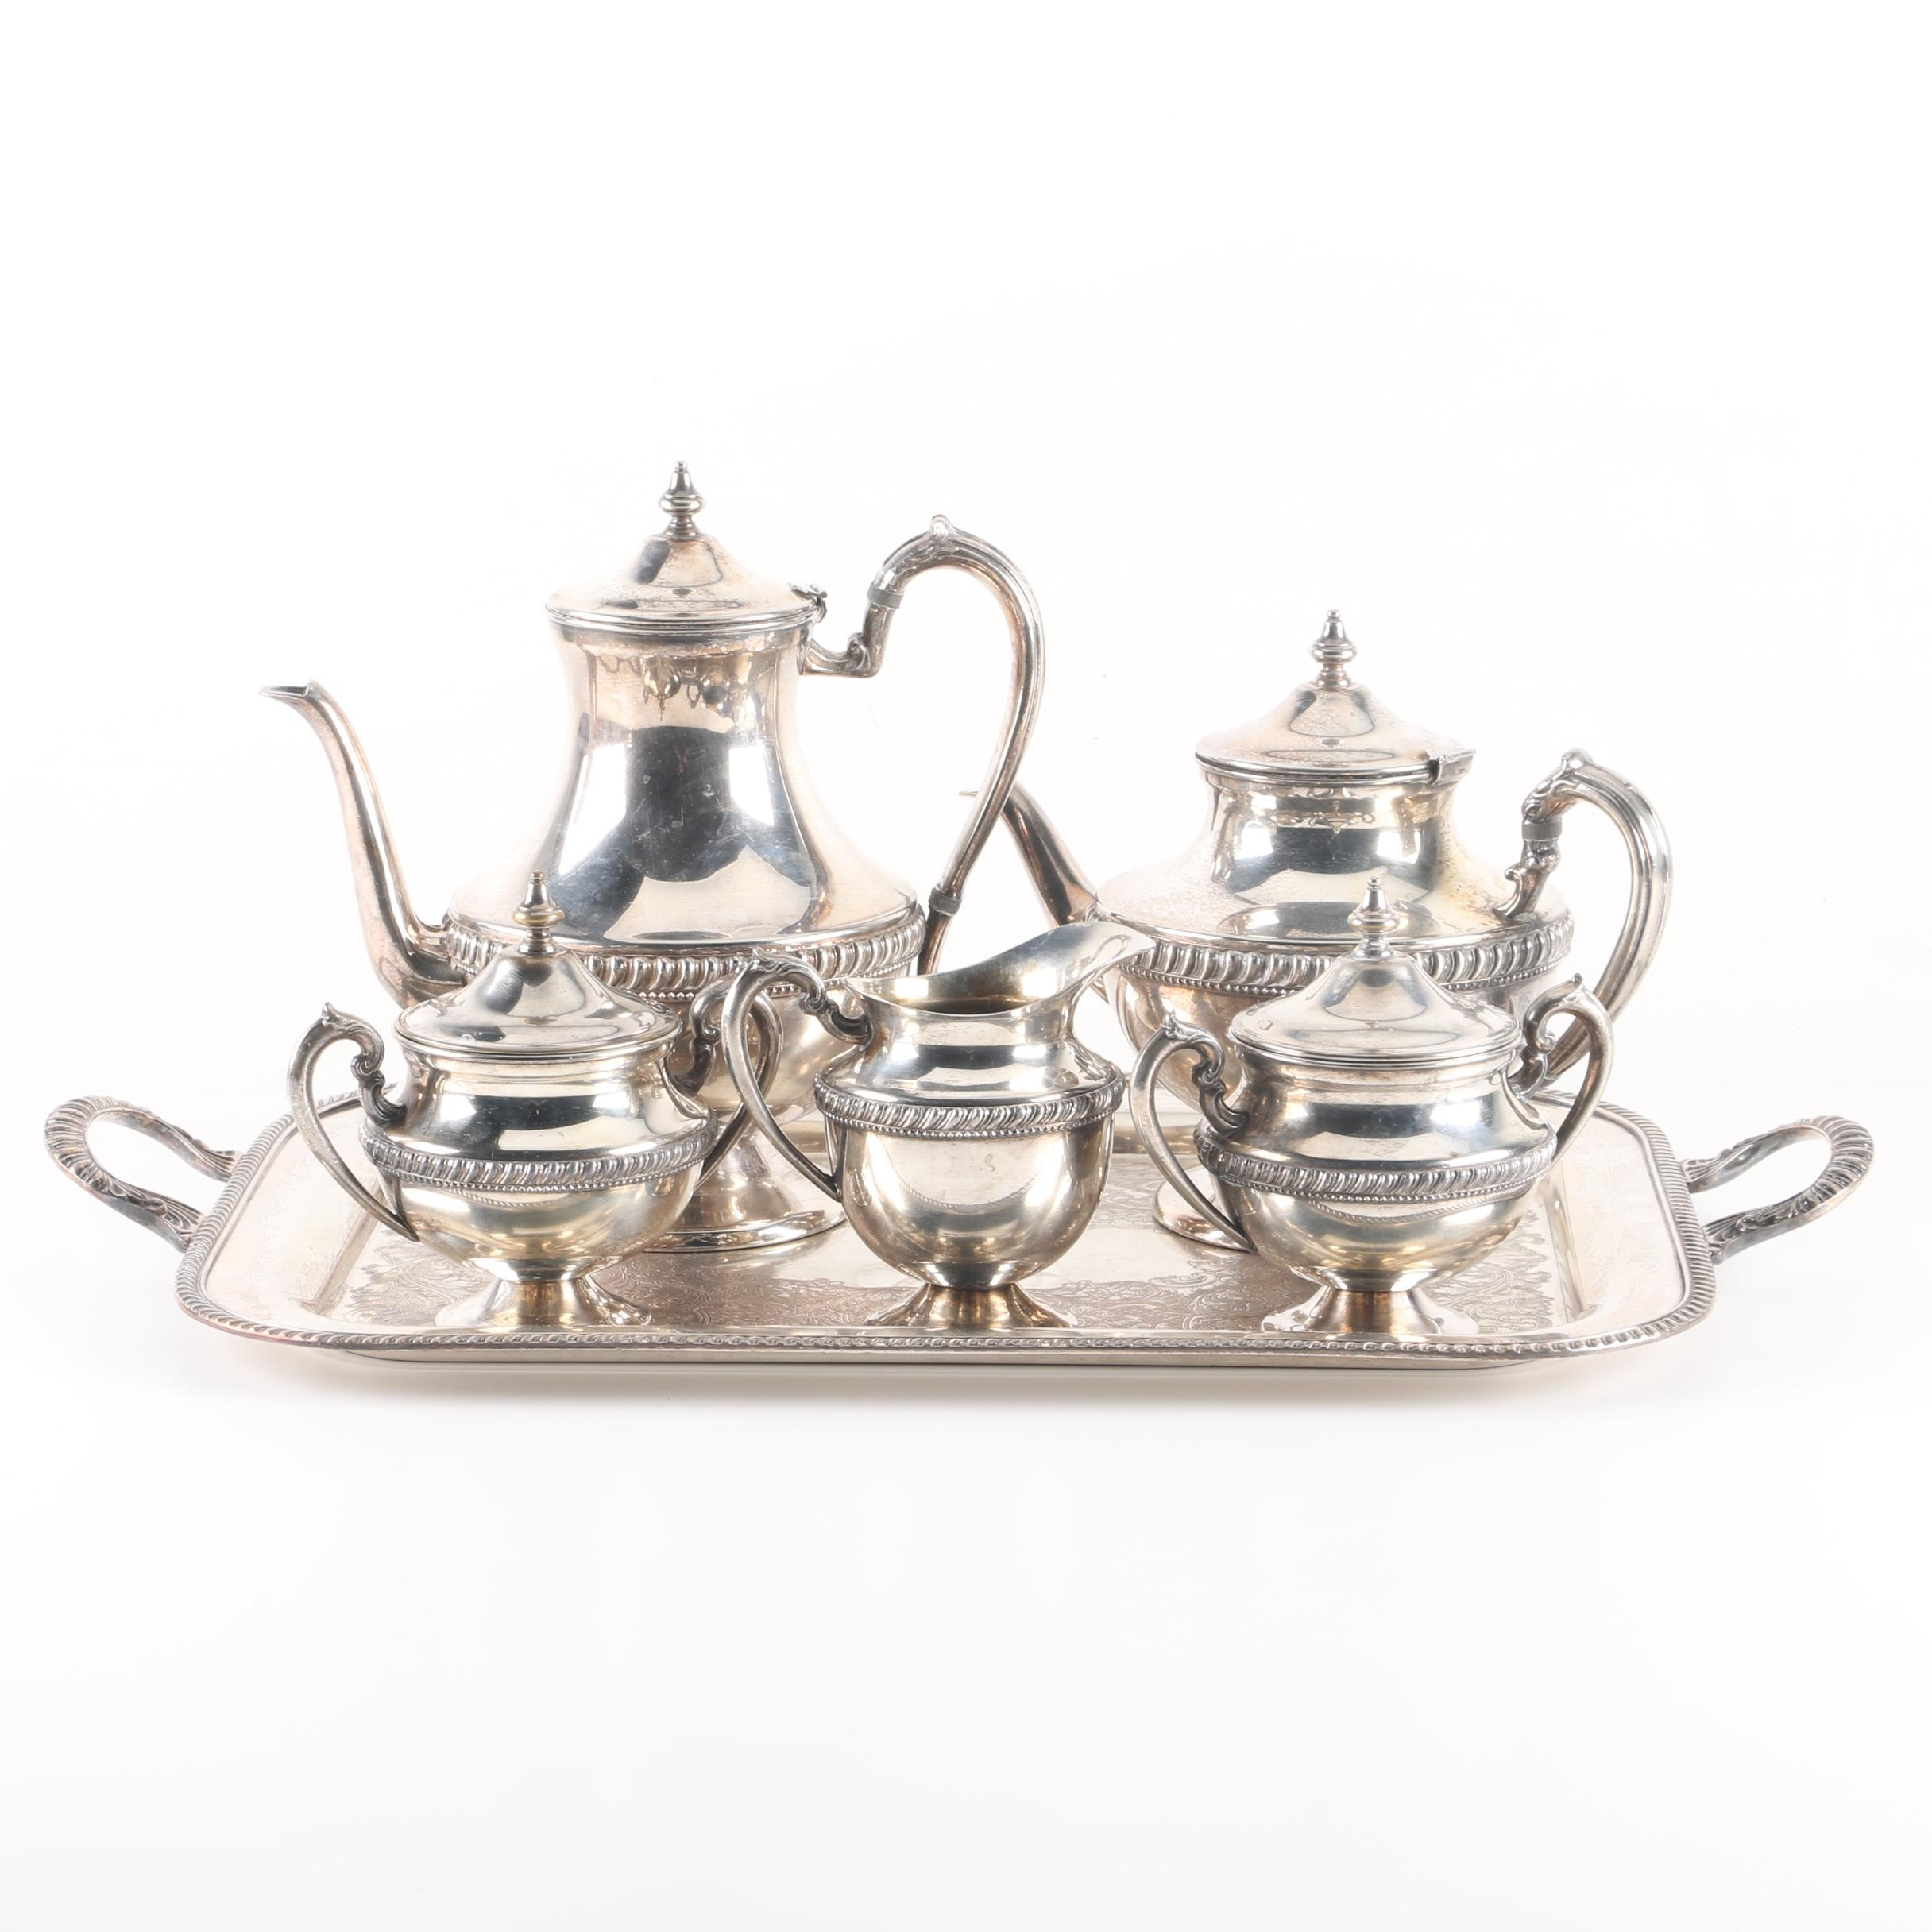 Lehman Brothers Silverware Silver-Plated Coffee and Tea Service